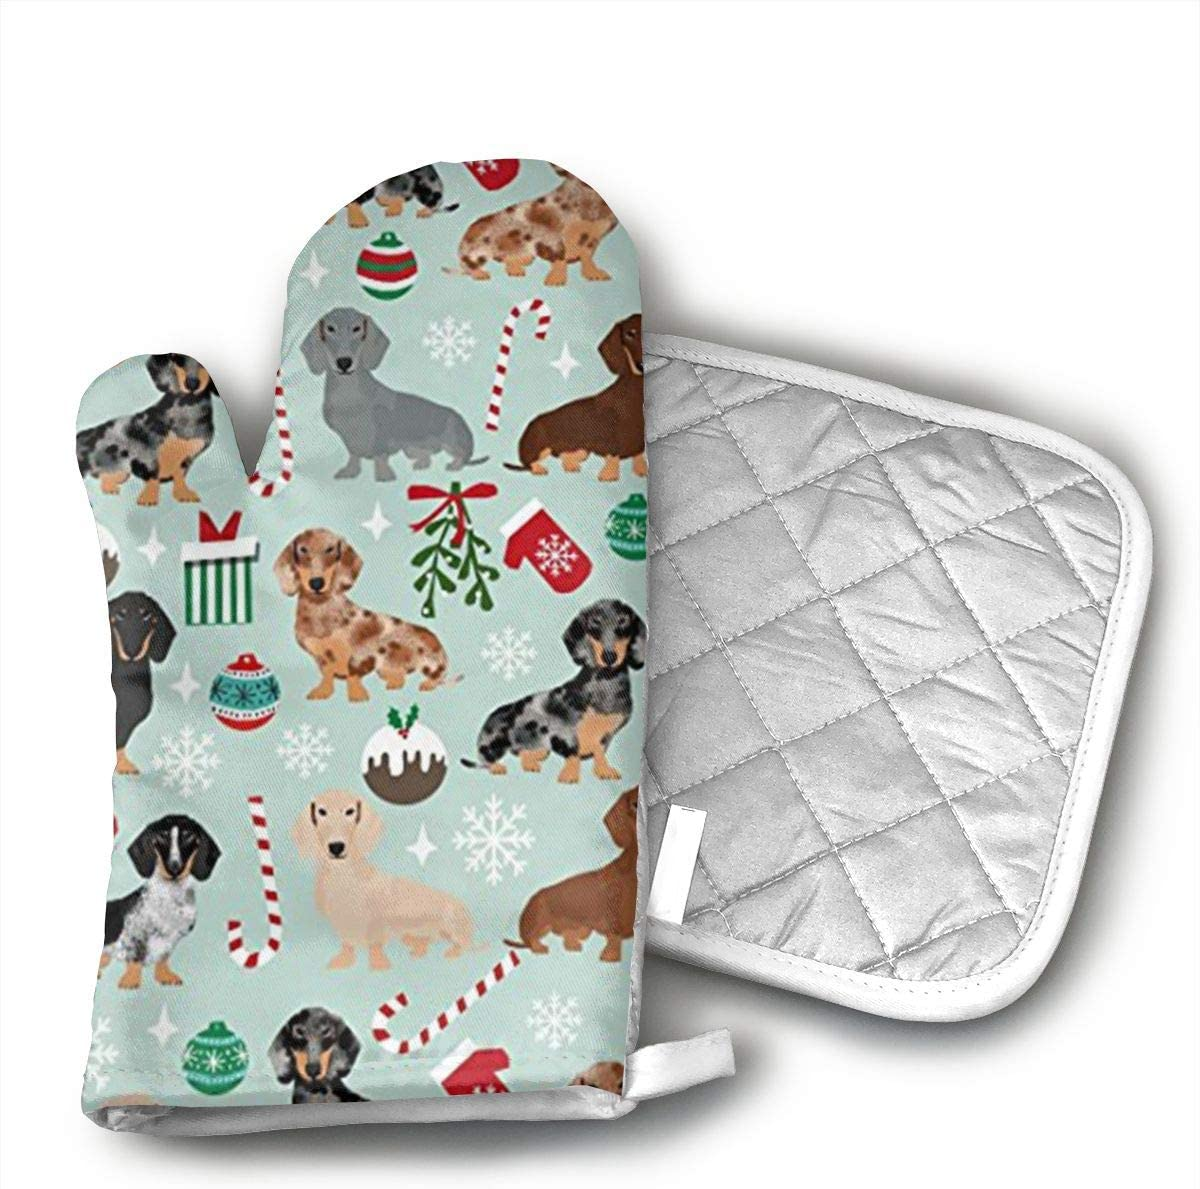 Wiqo9 Xmas Holiday Dog Dachshund Oven Mitts and Pot Holders Kitchen Mitten Cooking Gloves,Cooking, Baking, BBQ.